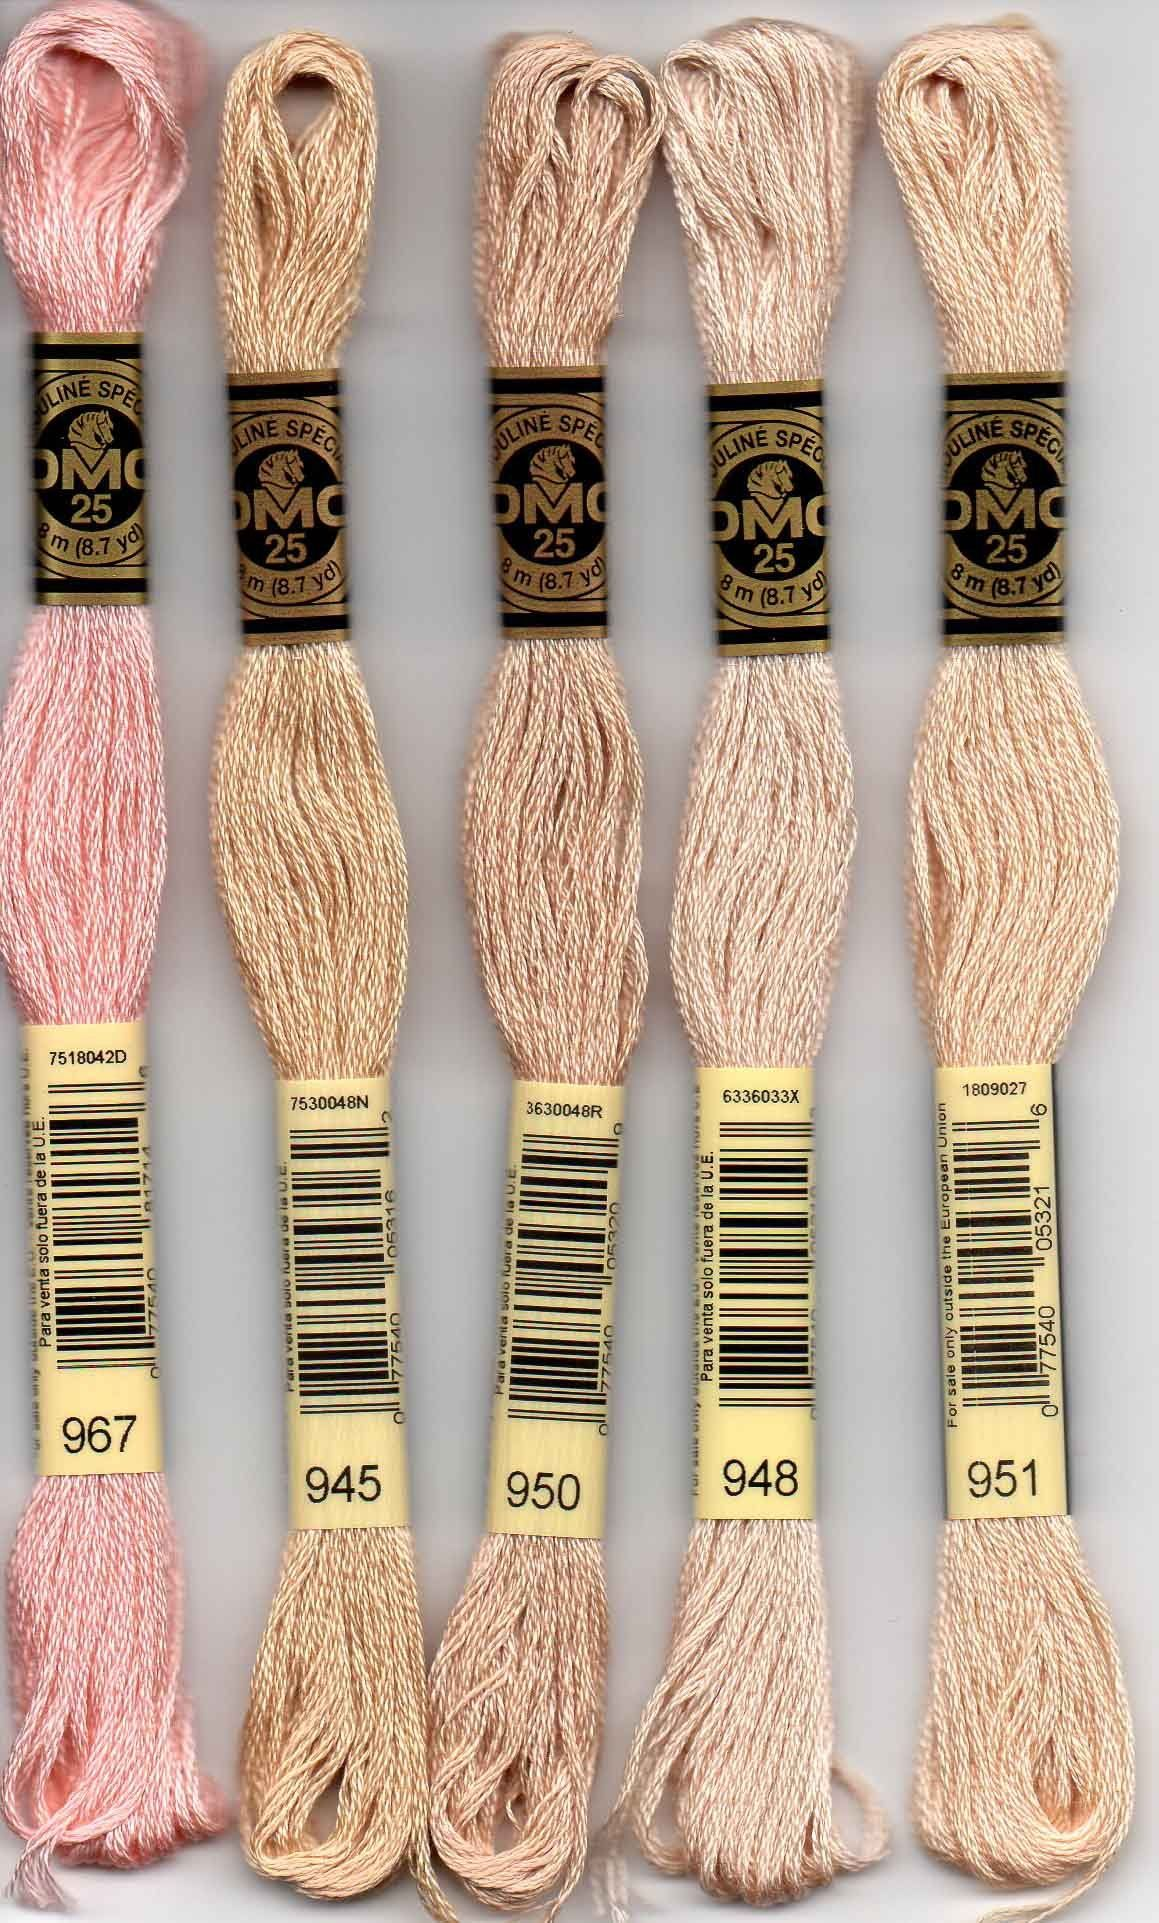 DMC Stranded Cotton Embroidery Floss Colour 945 Tawny